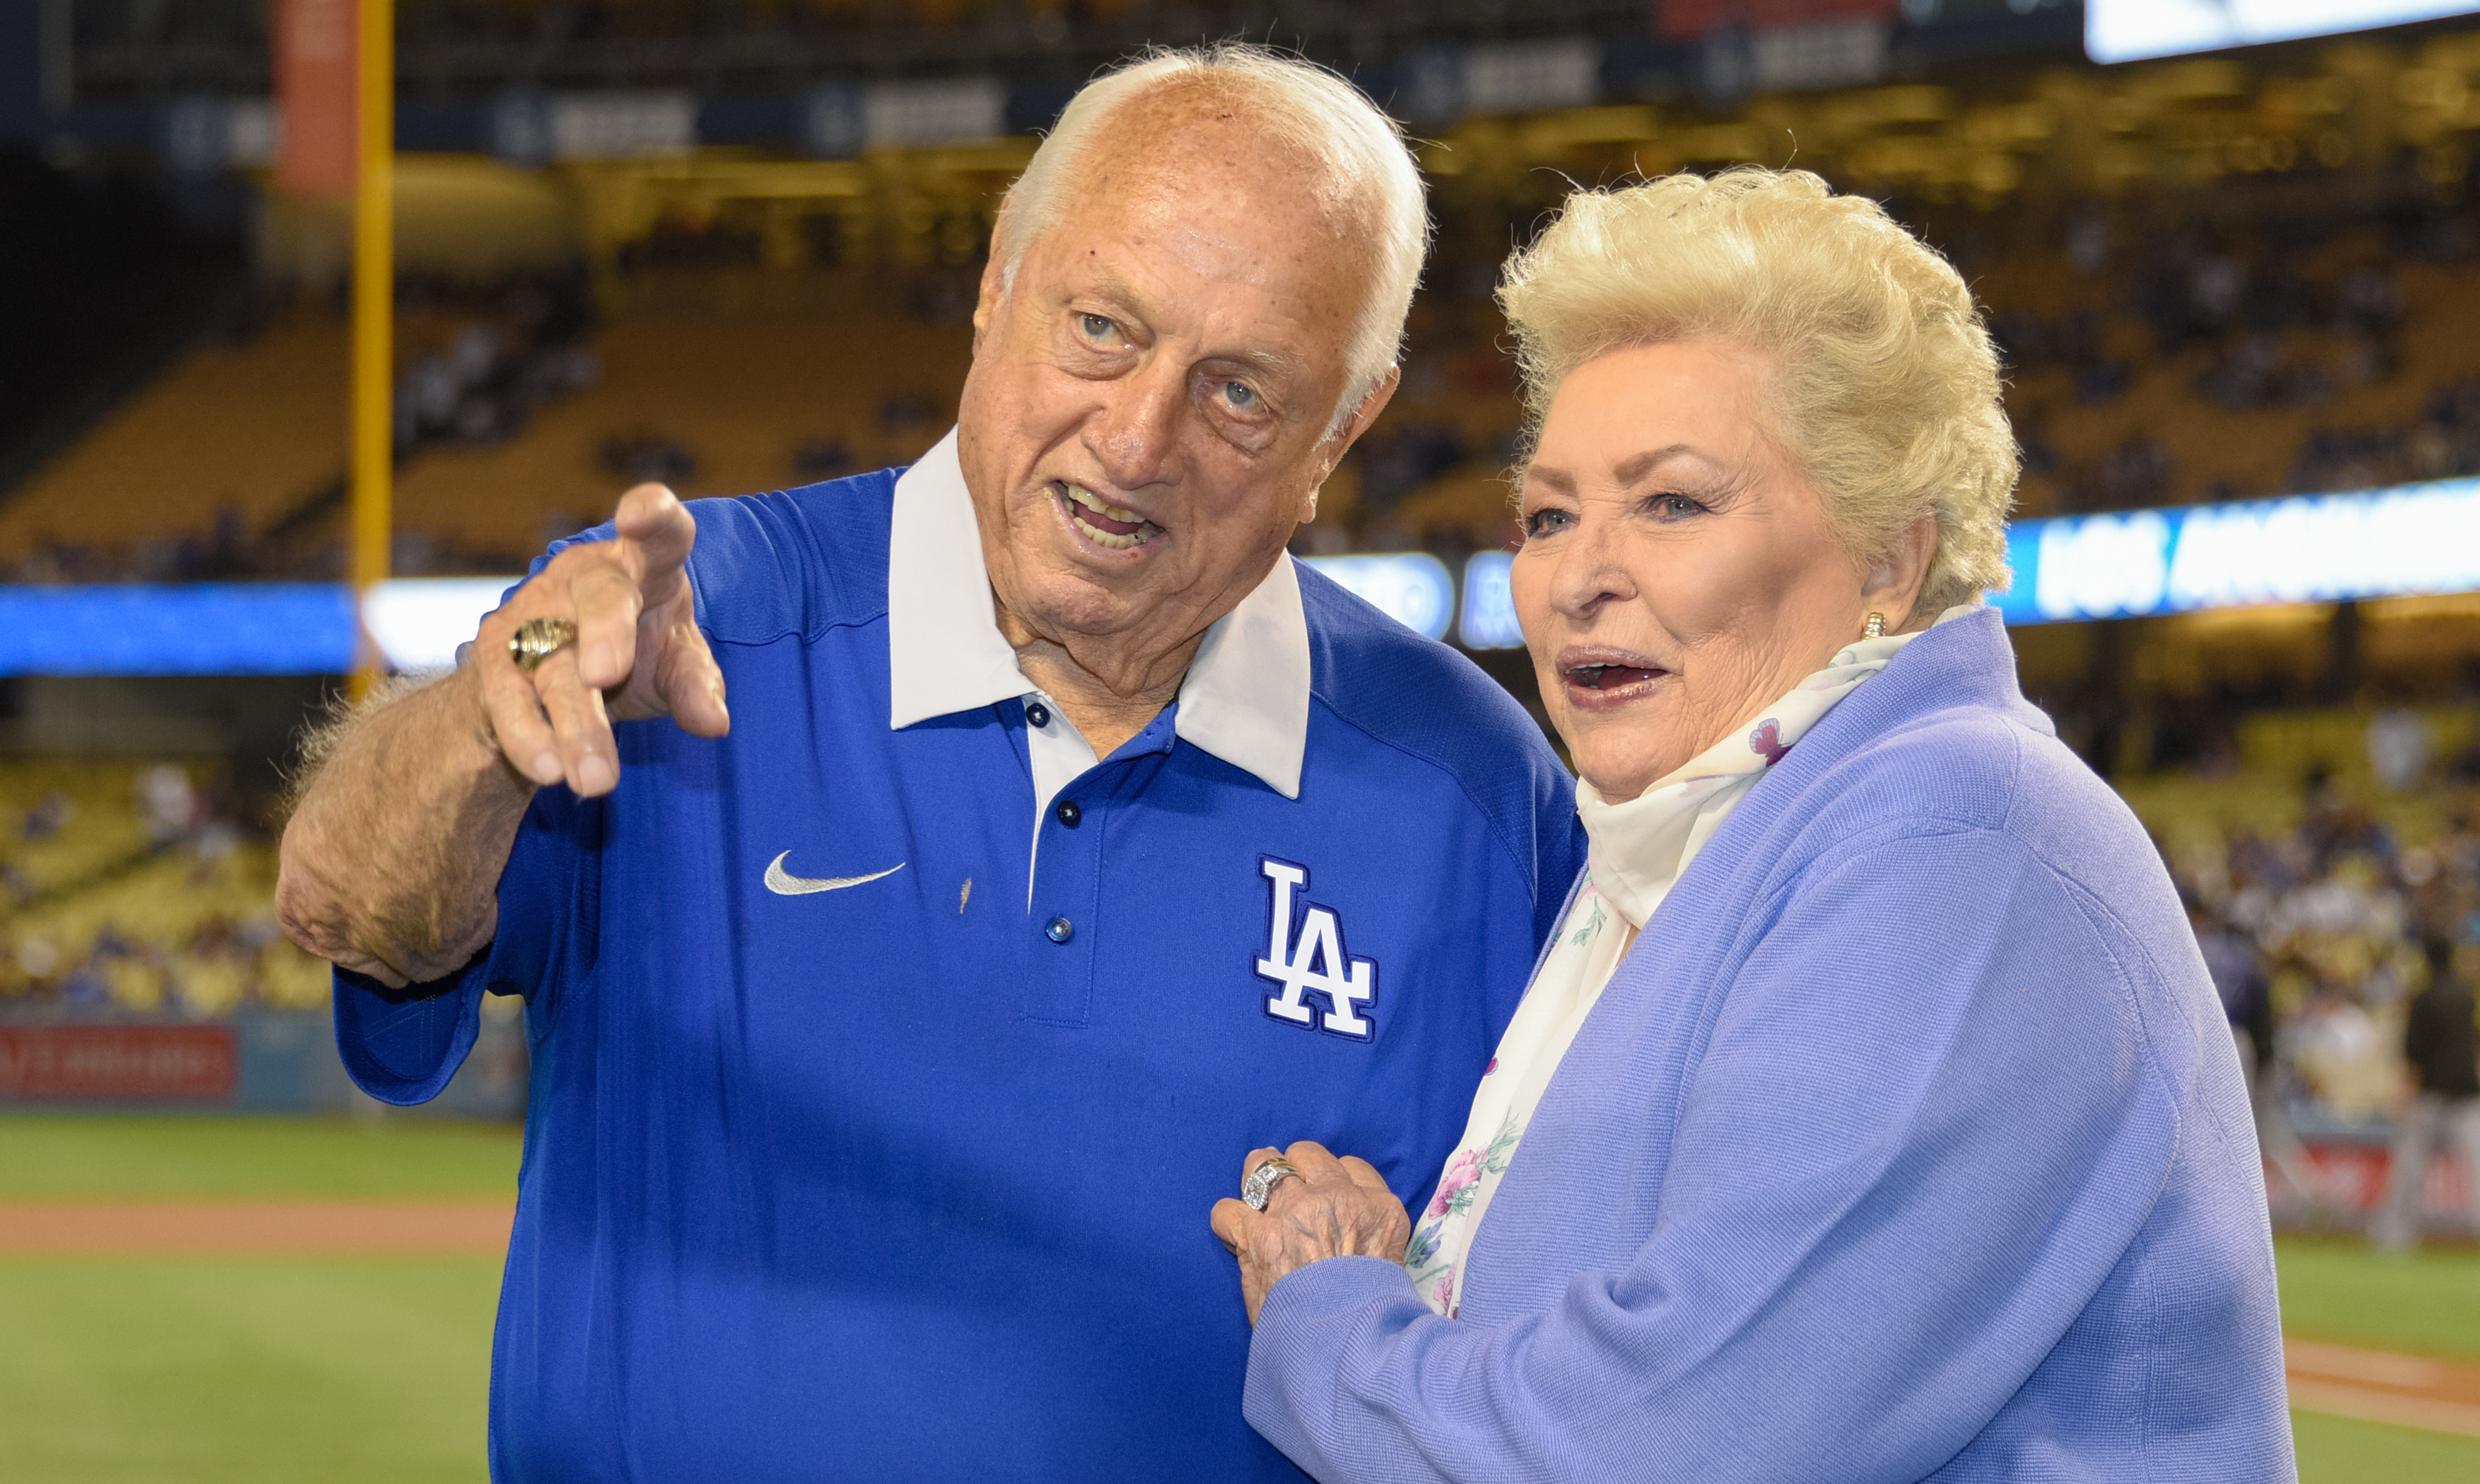 Jo Lasorda, Widow of Dodgers Hall of Fame Manager Tommy Lasorda, Dies at 91